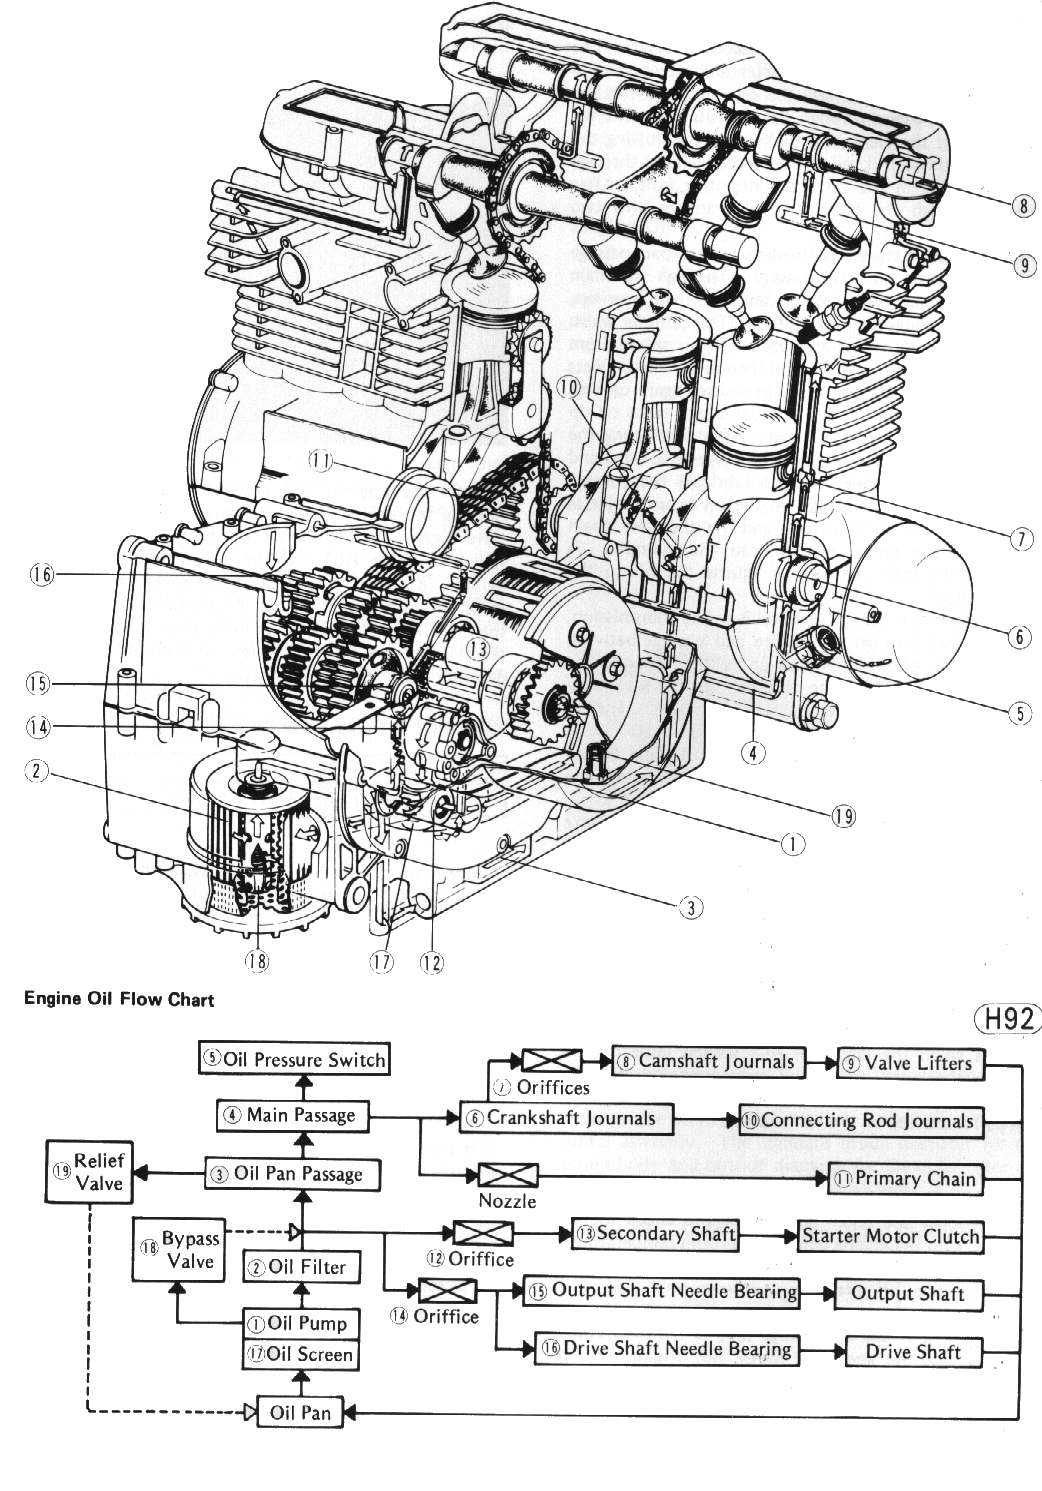 Honda Shadow 600 Gas Tank furthermore Small Engine Diagram in addition Motorcycle Info additionally 21737 Ktm 200 Duke 1128 Print together with Gsarchive bwringer. on motorcycle wiring diagram